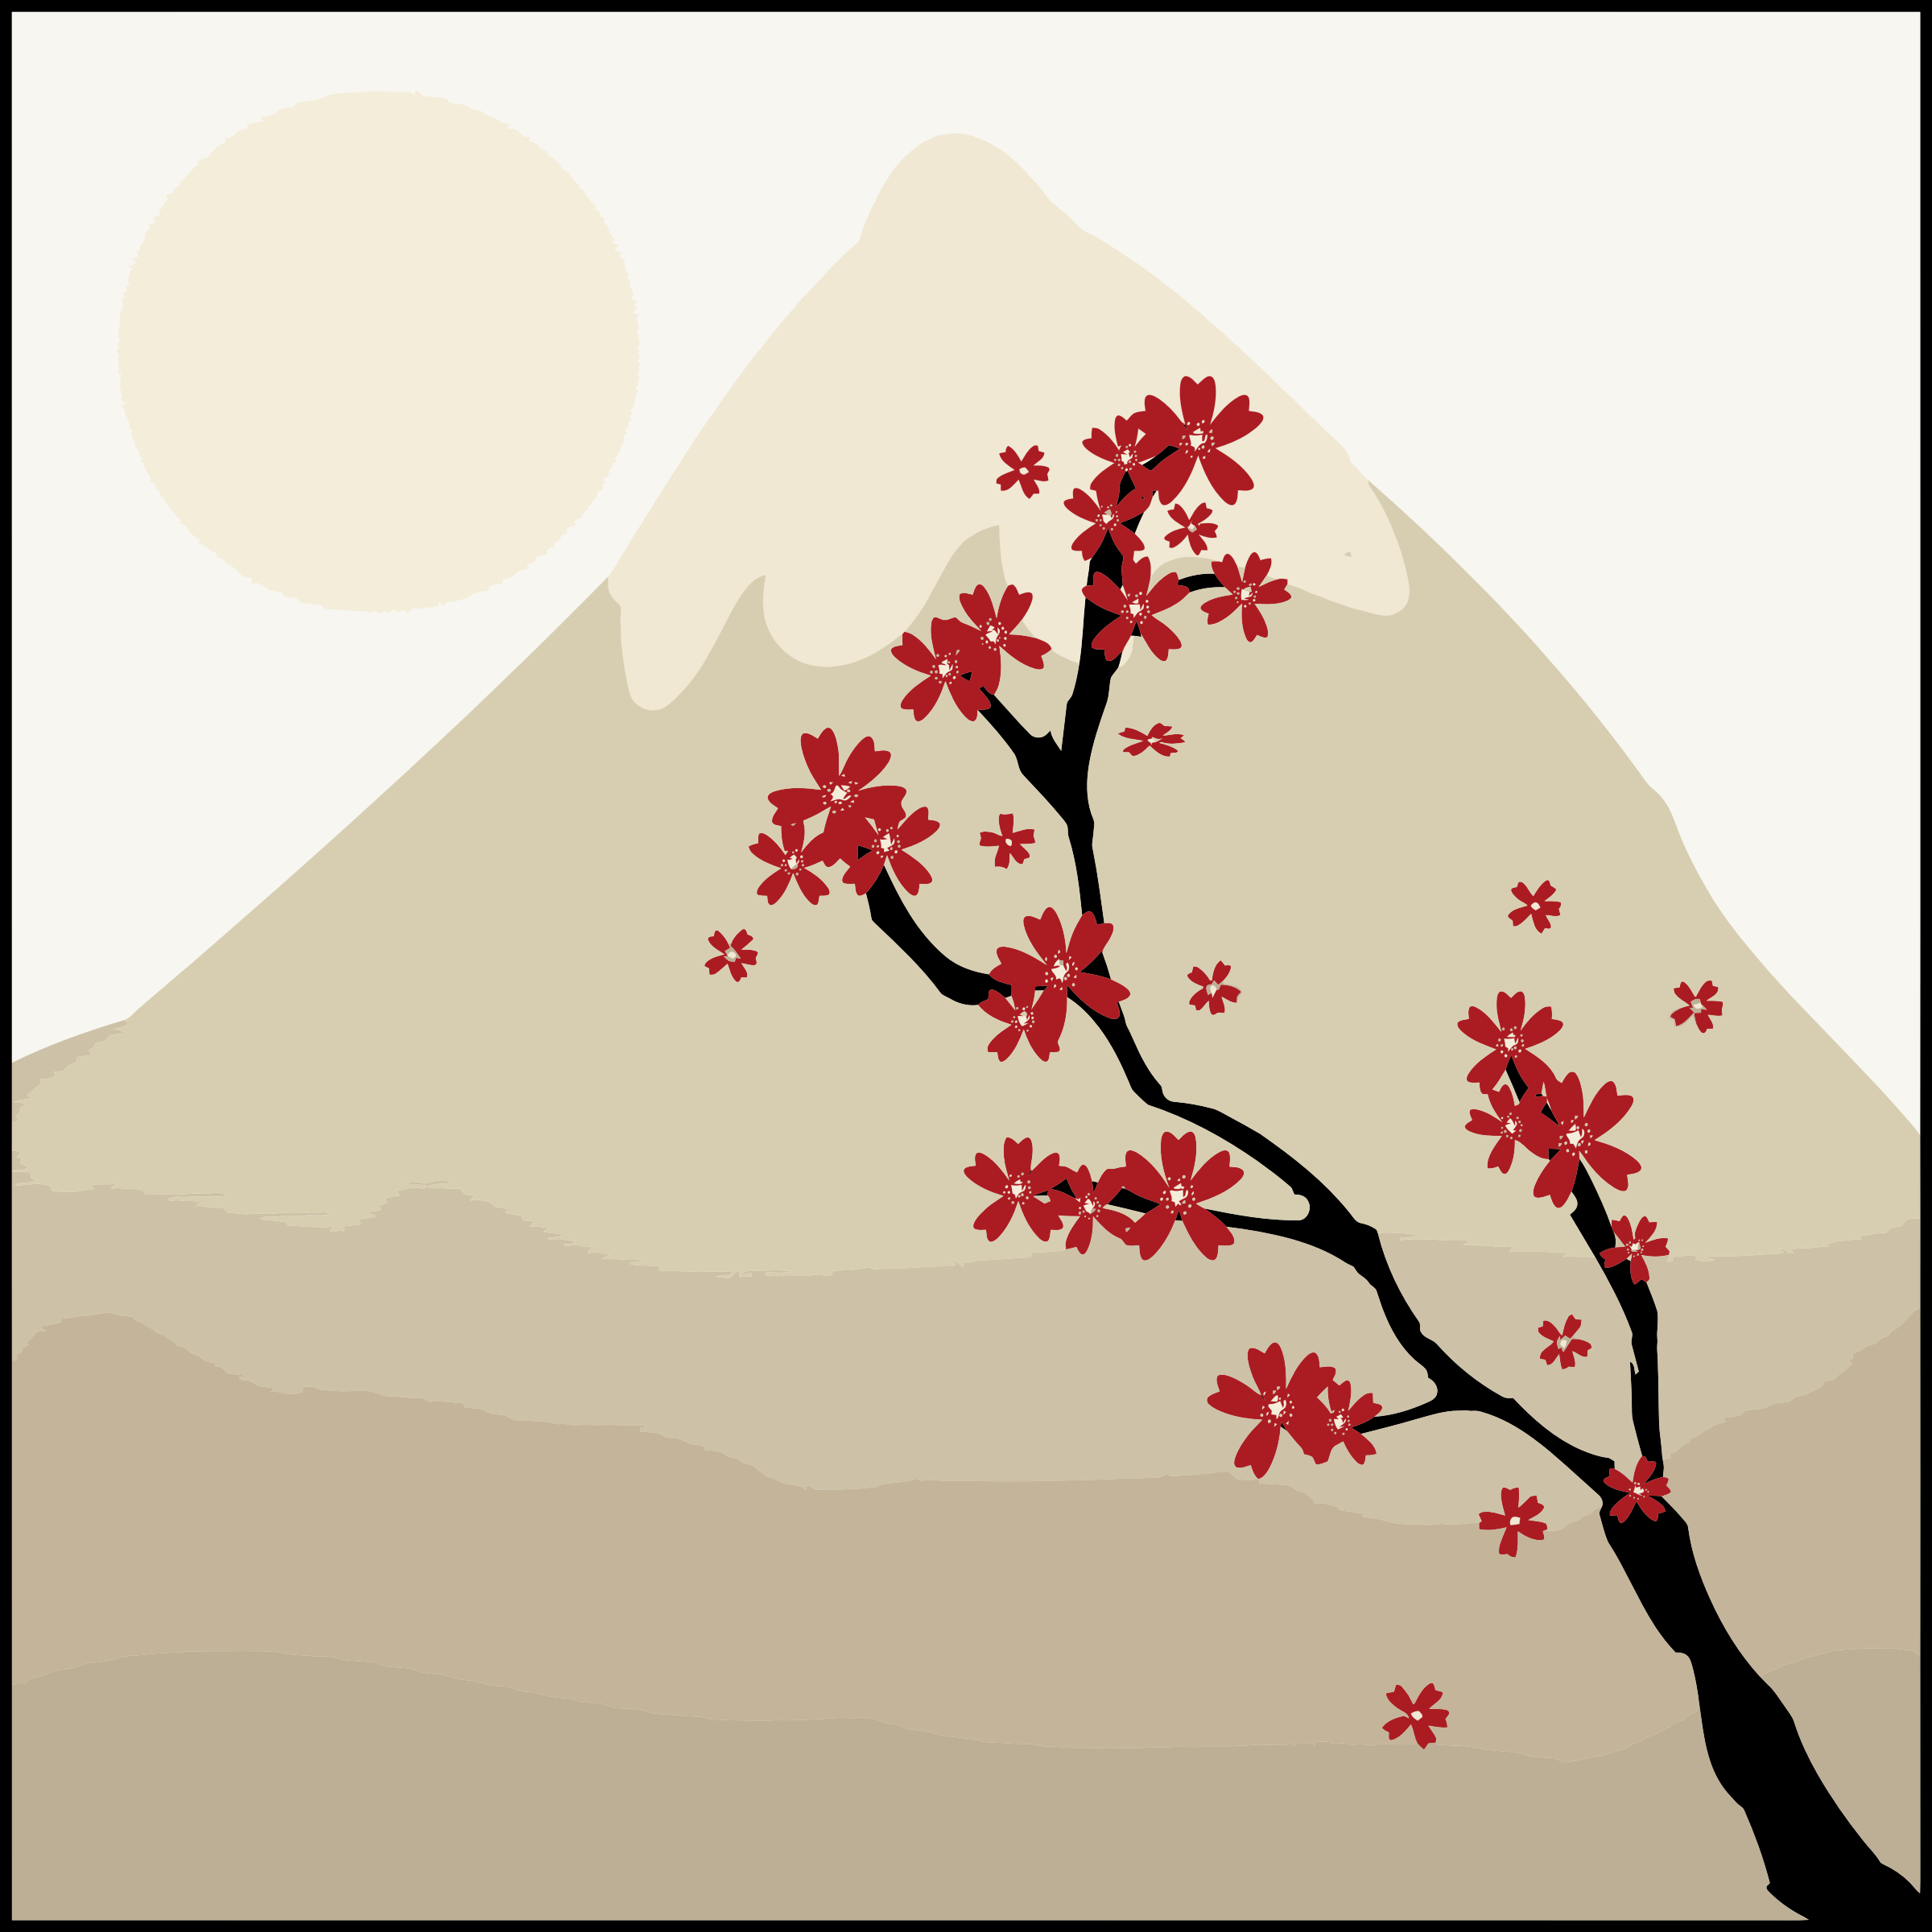 Japanese Maple Tree In The Shadow Of A Mountain by GDJ